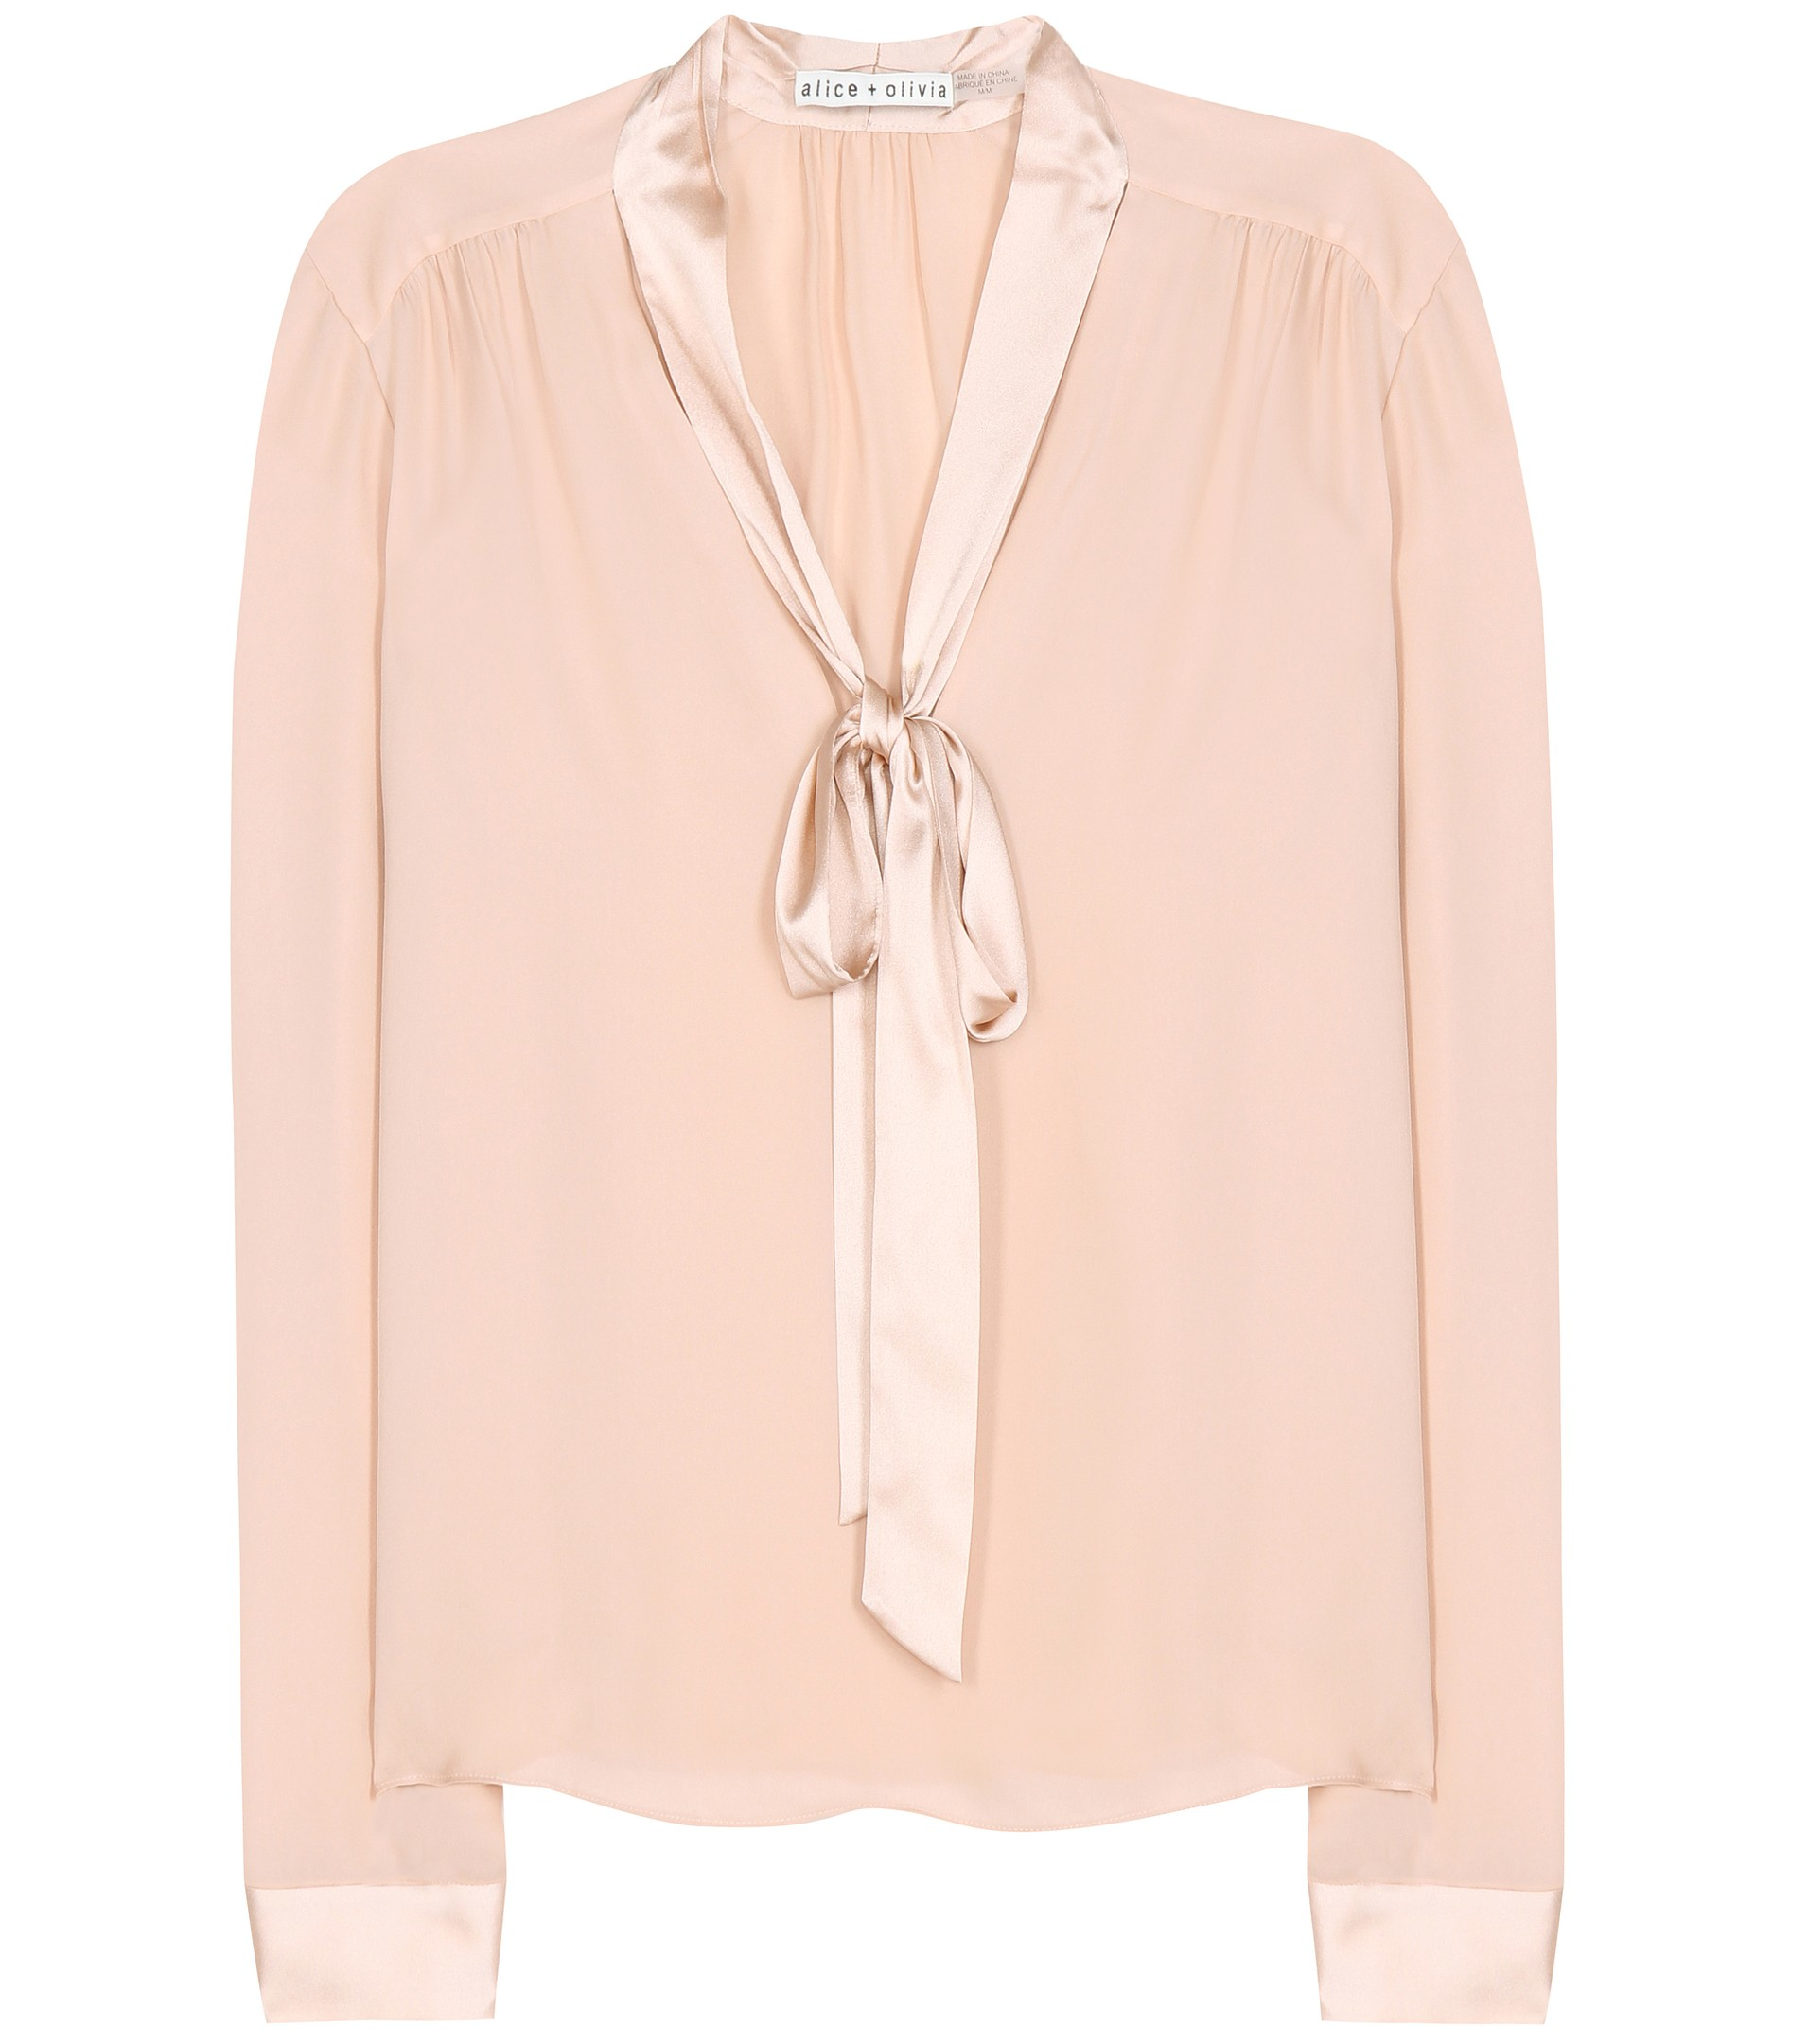 3a95a6232c6c04 Lyst - Alice + Olivia Irma Pussy Bow Silk Blouse in Pink